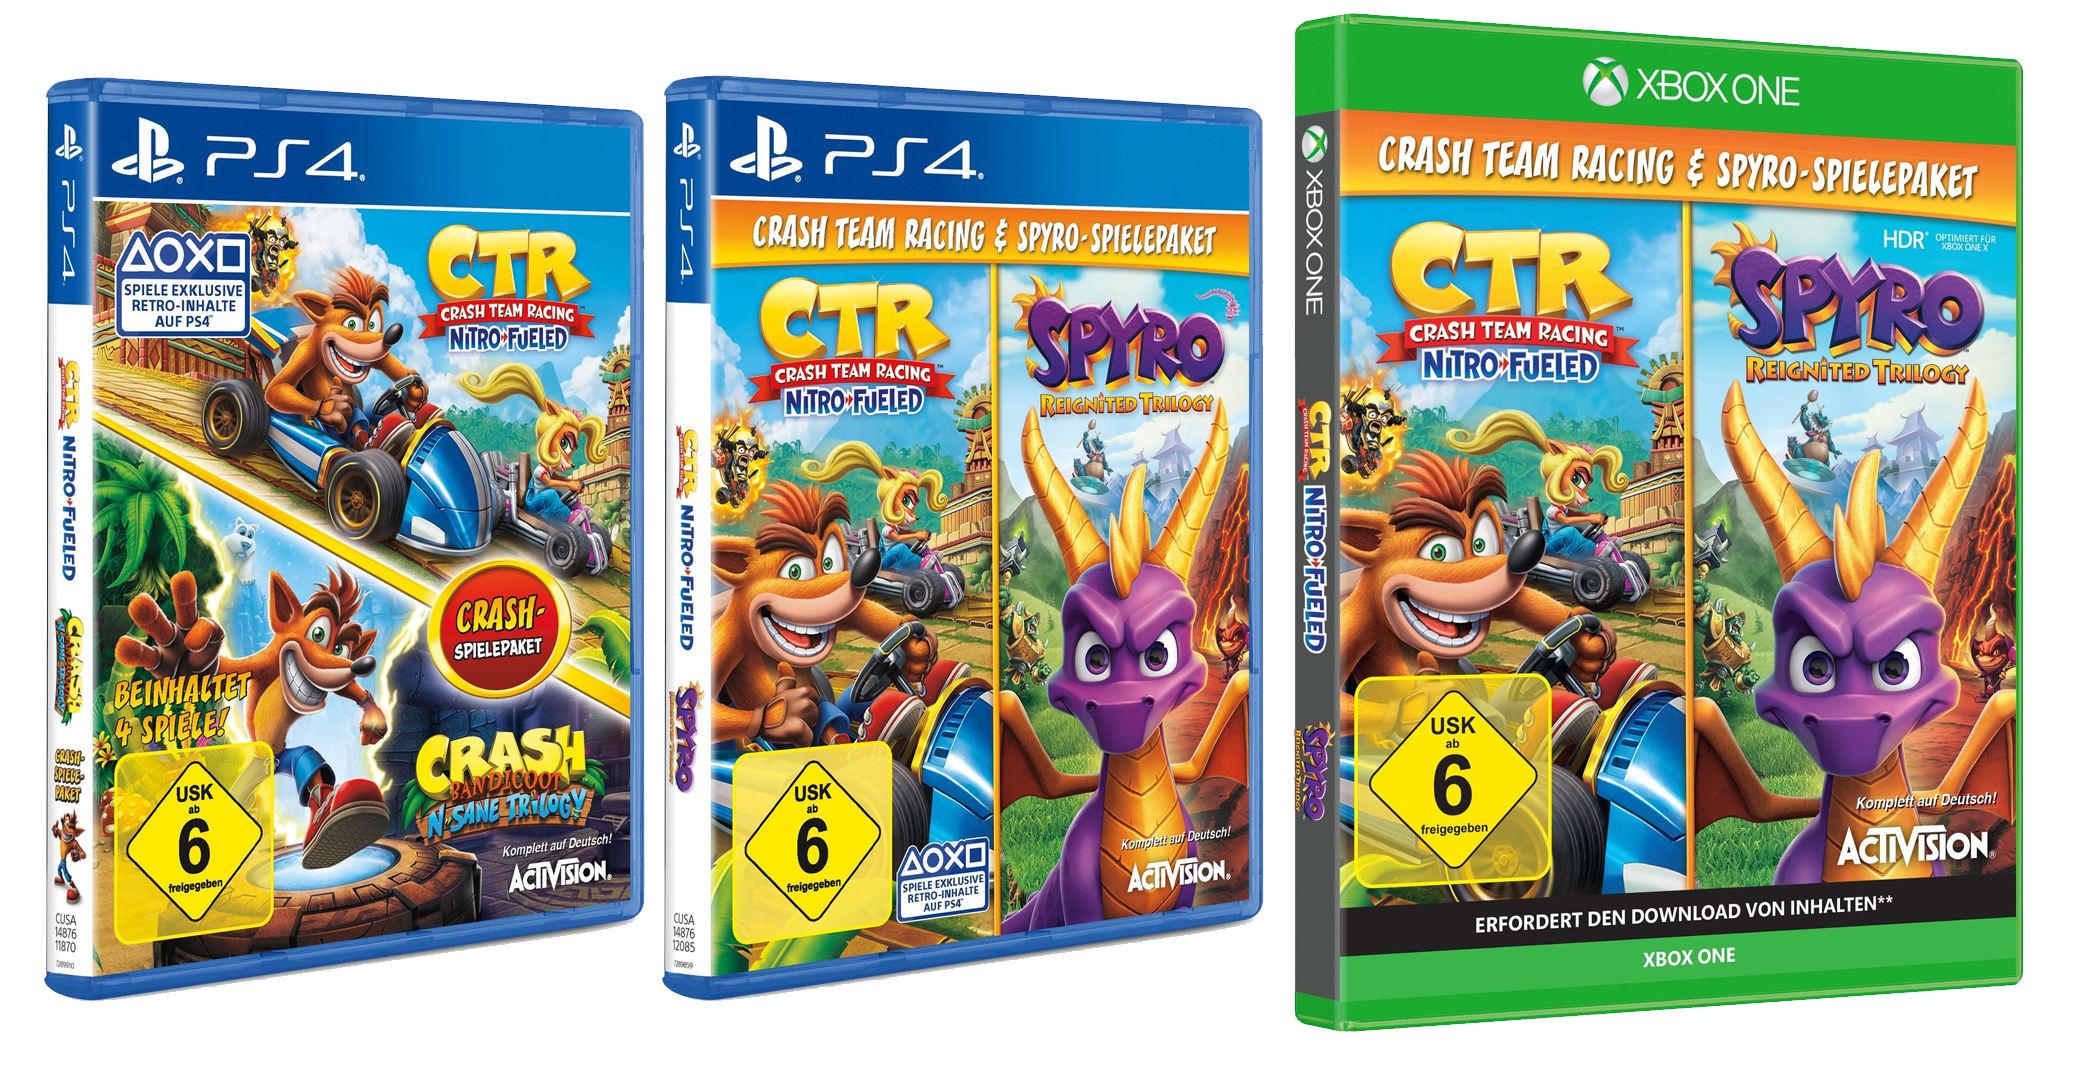 Update 2 Even More Retailers Put Up The Crash Bandicoot N Sane Trilogy Spyro Reignited Trilogy Bundles With Crash Team Racing Nitro Fueled Crashy News